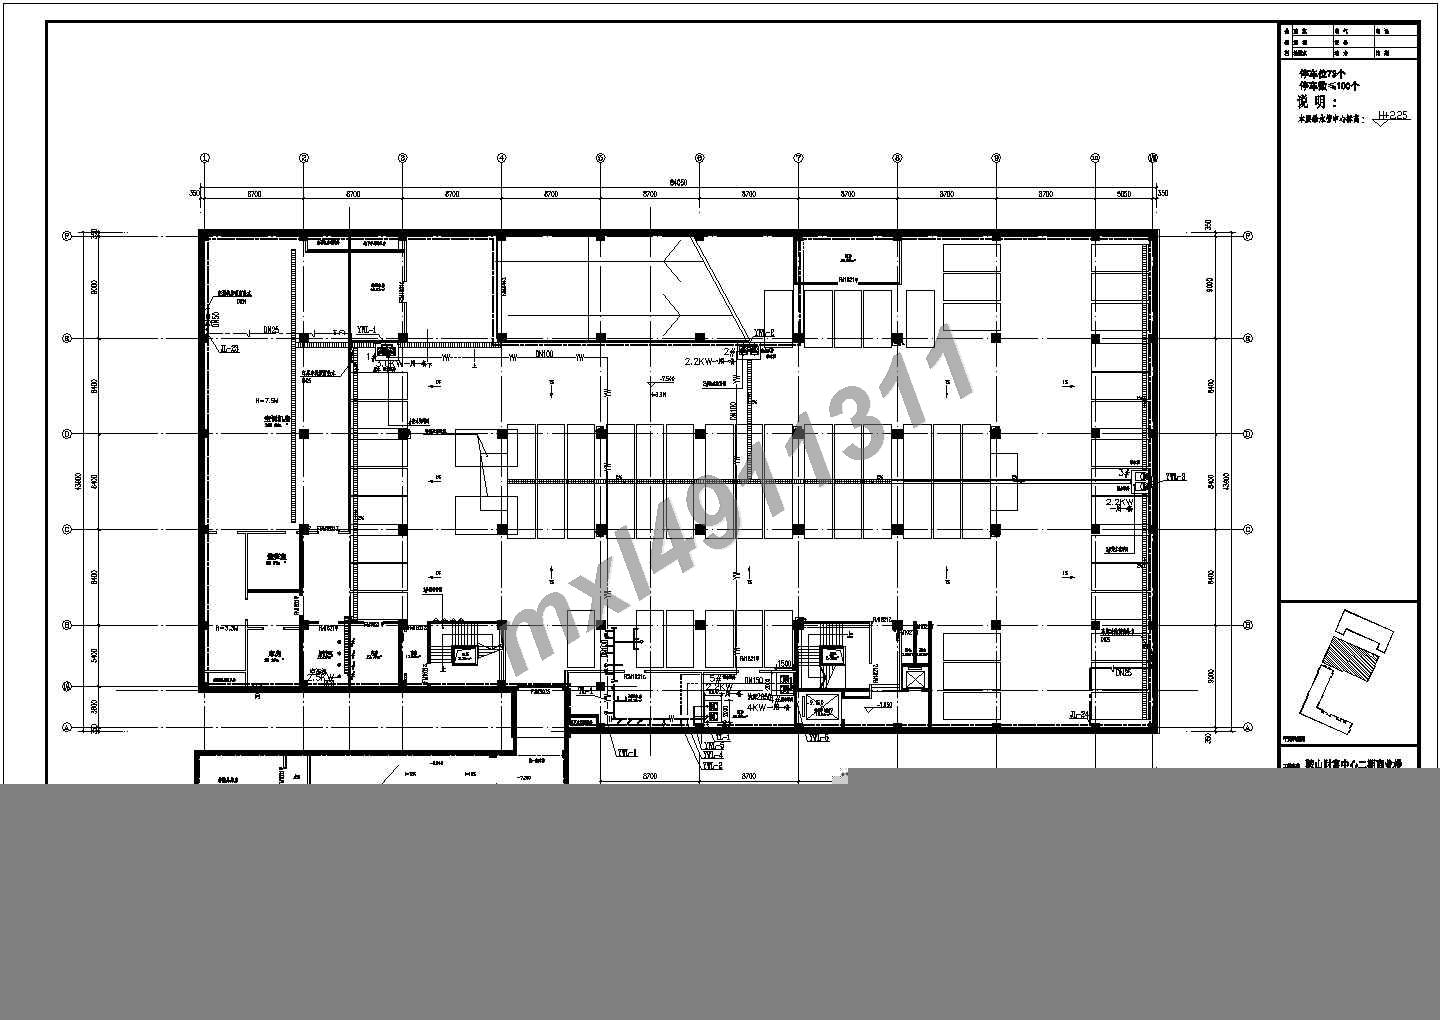 Liaoning province in four layers of commercial complex interior water supply water supply and drainage construction cad figure drainage DWG drawing